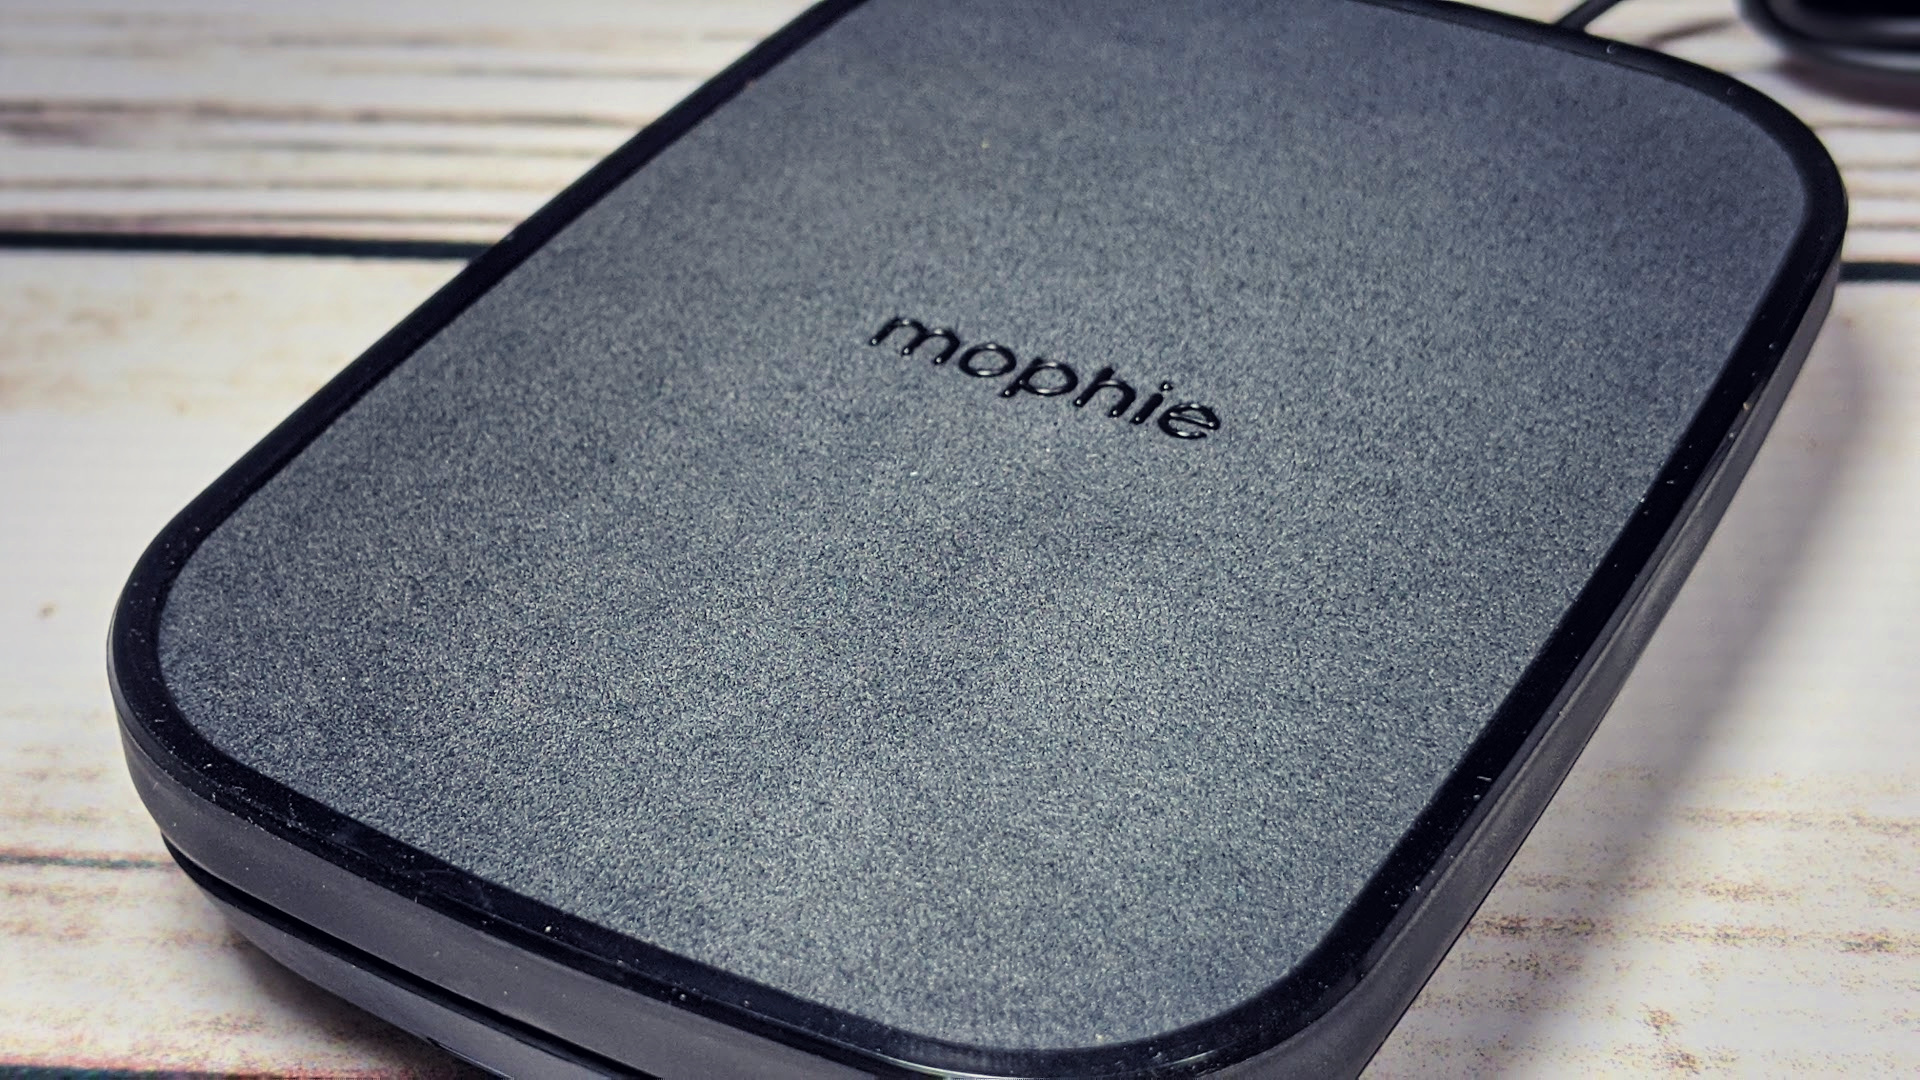 Reviewing Mophie S Wireless Charging Stands And Pads Mophie universal wireless charger charging car vent mount phone holder black. wireless charging stands and pads